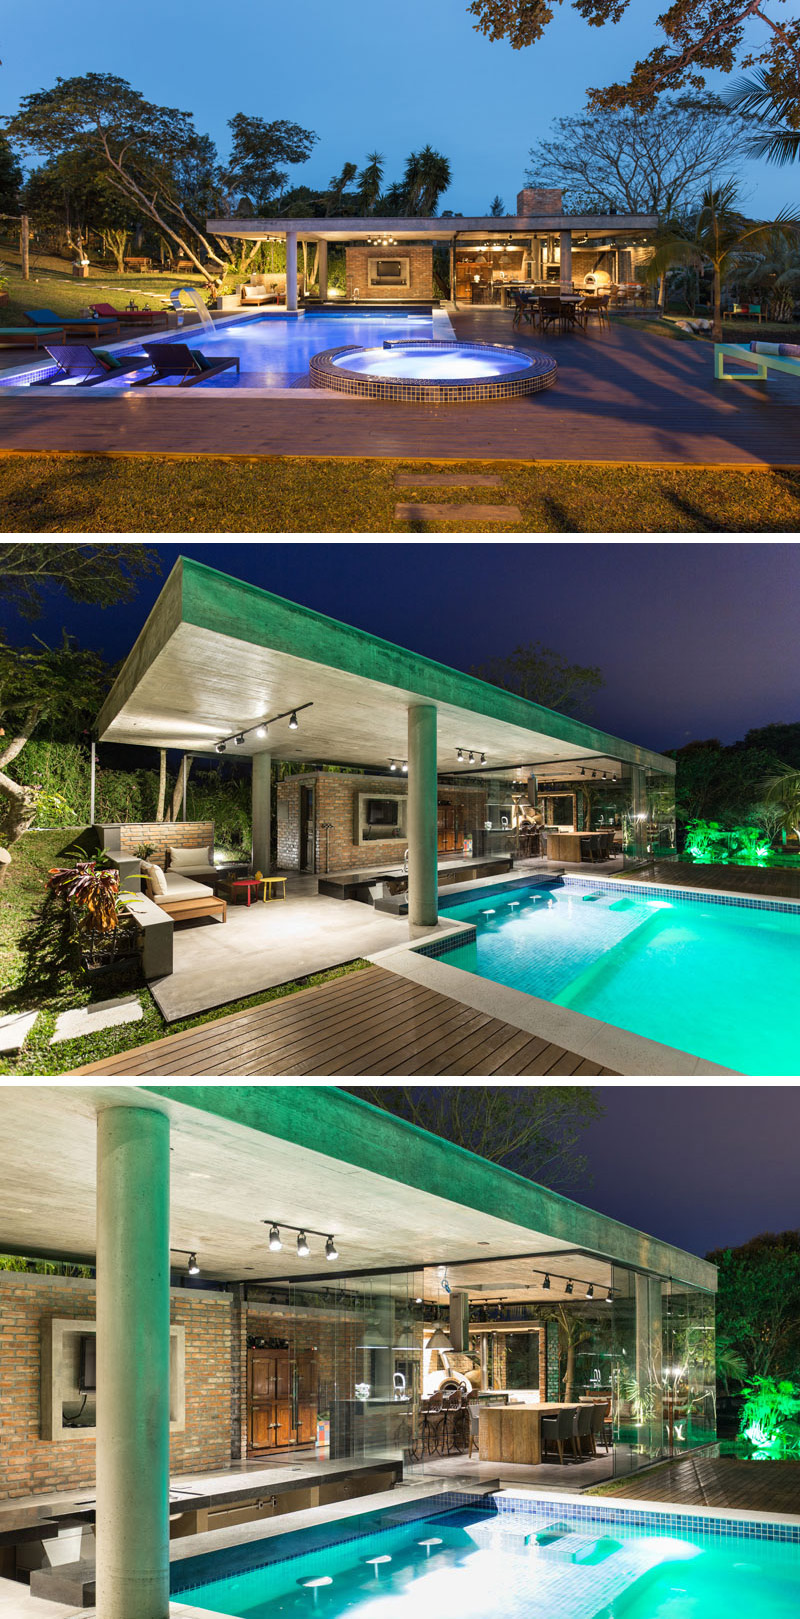 11 modern pool houses to get you inspired for summer contemporist. Black Bedroom Furniture Sets. Home Design Ideas